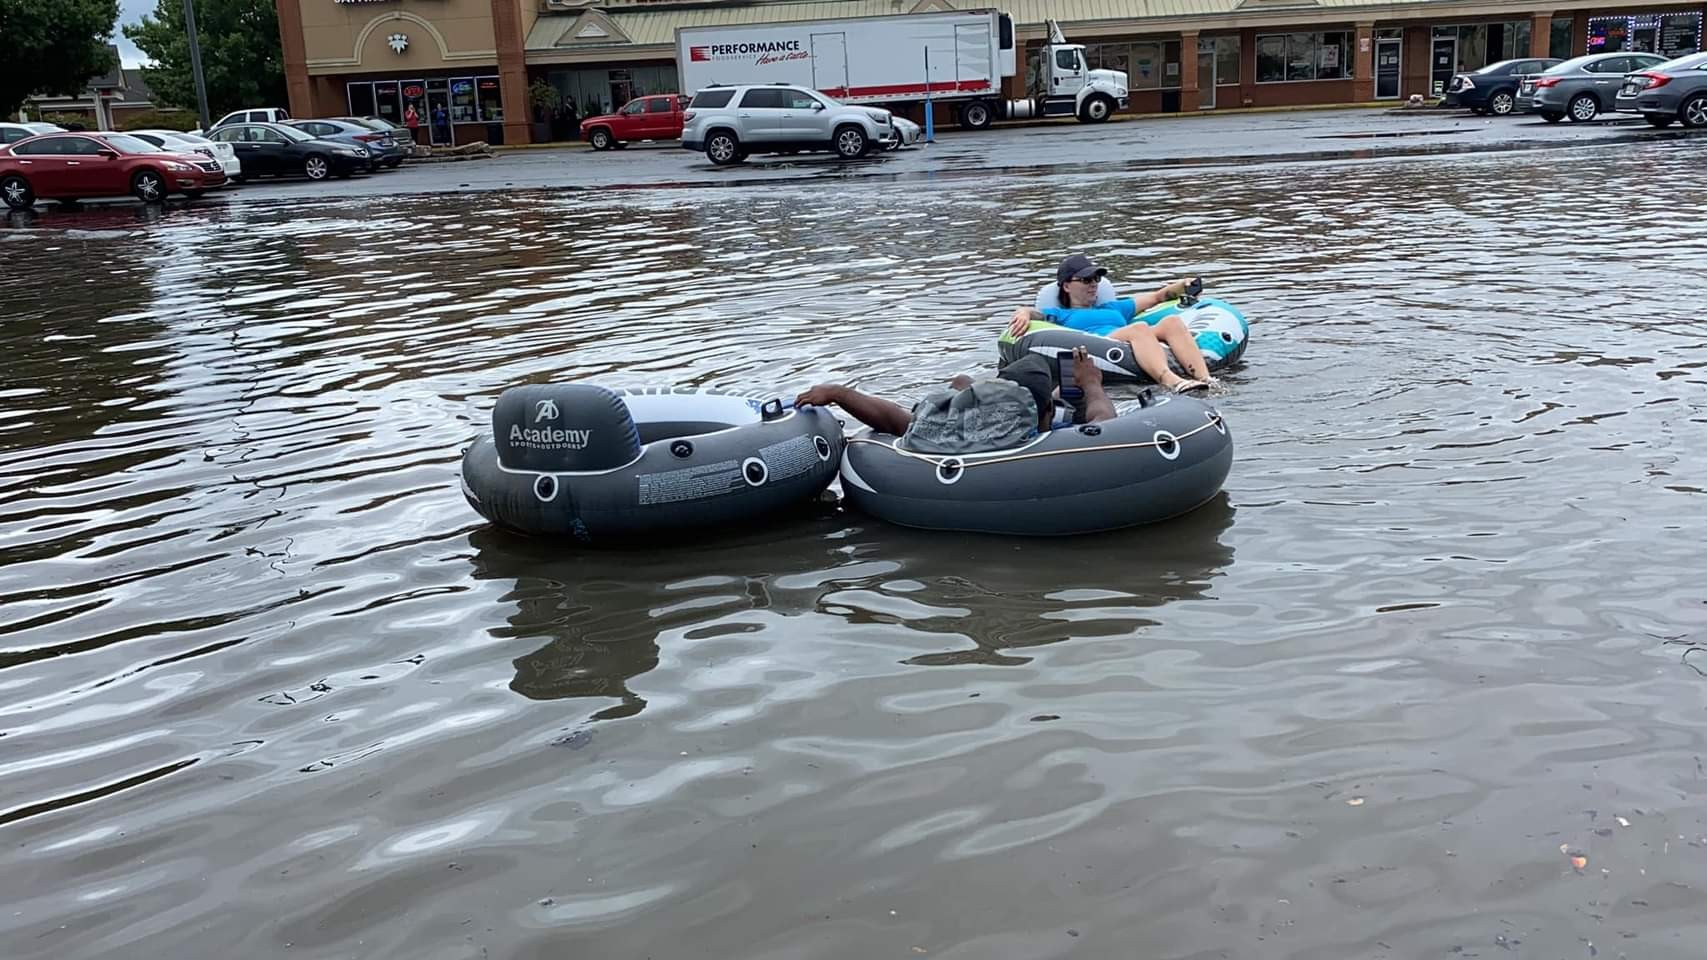 HAPPENING NOW: People are floating around in Academy Parking lot in Warner Robins.